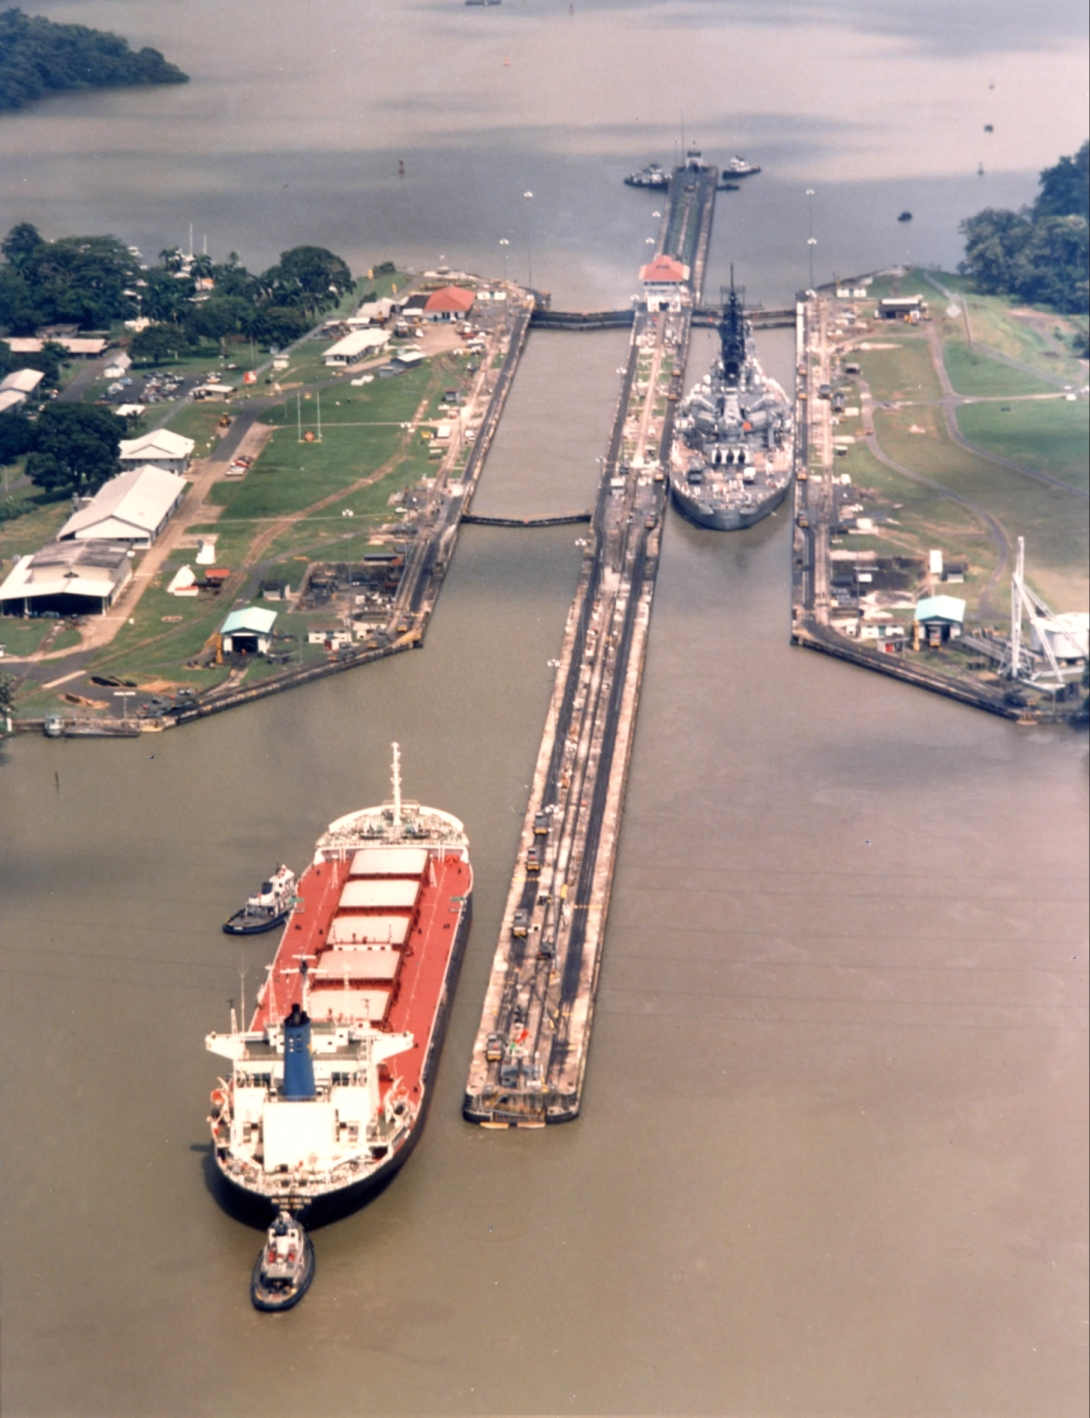 iowa_at_pedro_miguel_locks_canal.jpg